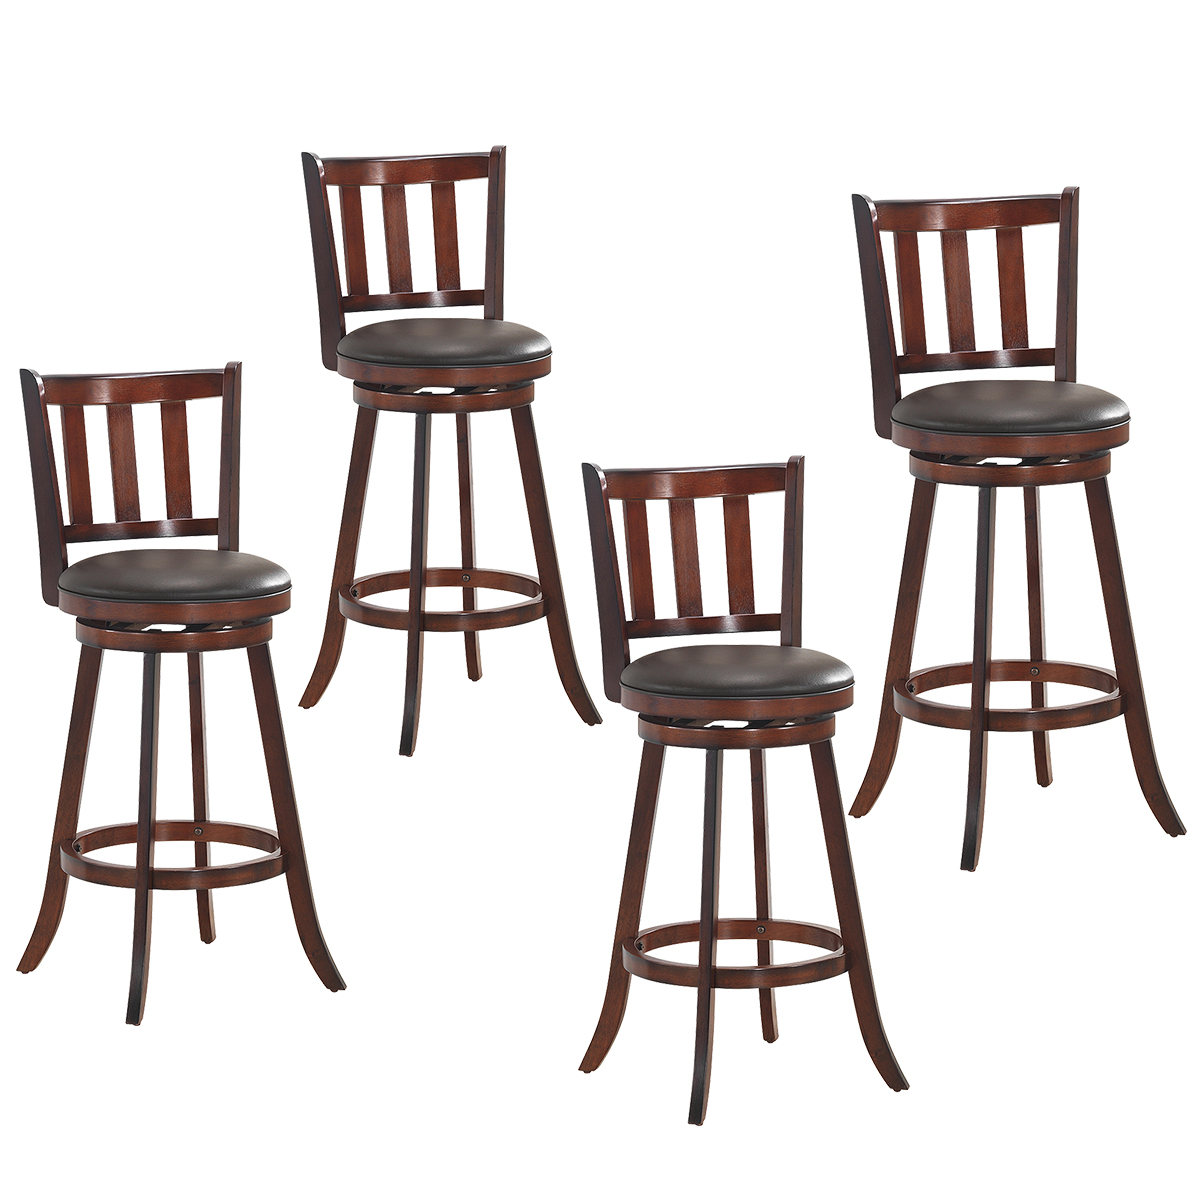 Costway Set Of 4 31'' Swivel Bar Stool Leather Padded Dining Kitchen Pub Bistro Chair